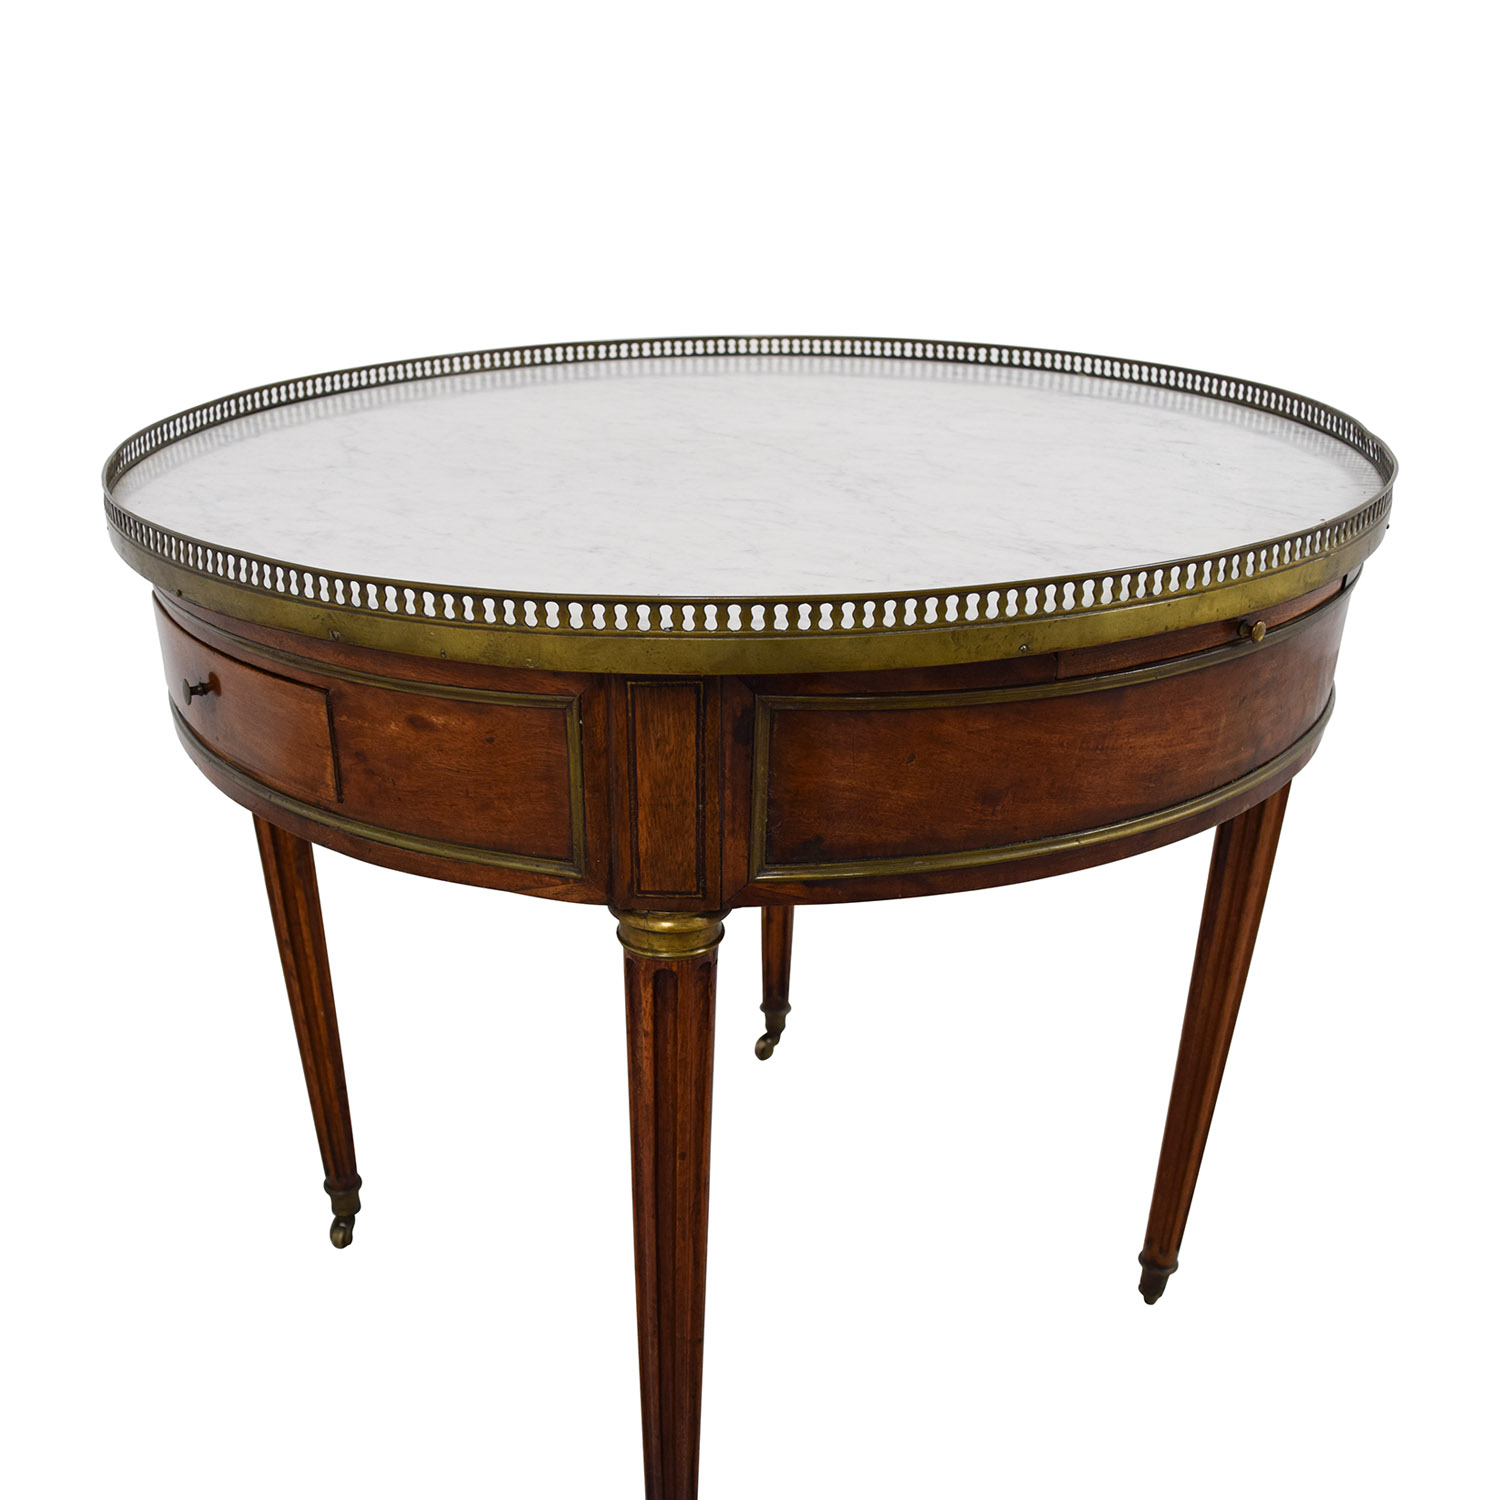 Round Marble Top Dining Table 90 Off Antique Round Table With Marble Top Tables